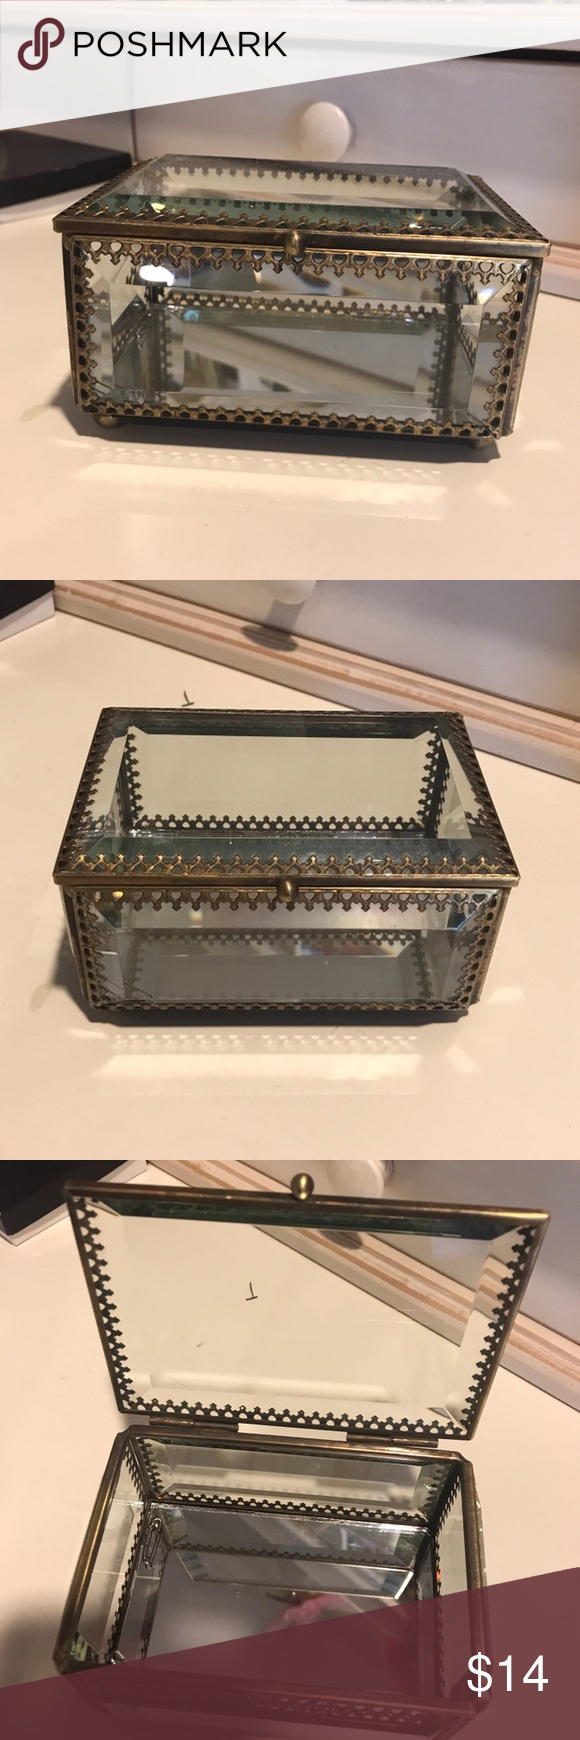 Nicole Miller Jewelry Box Magnificent Nicole Miller Jewelry Box Never Used Jewelry Boxbeautifulperfect Inspiration Design